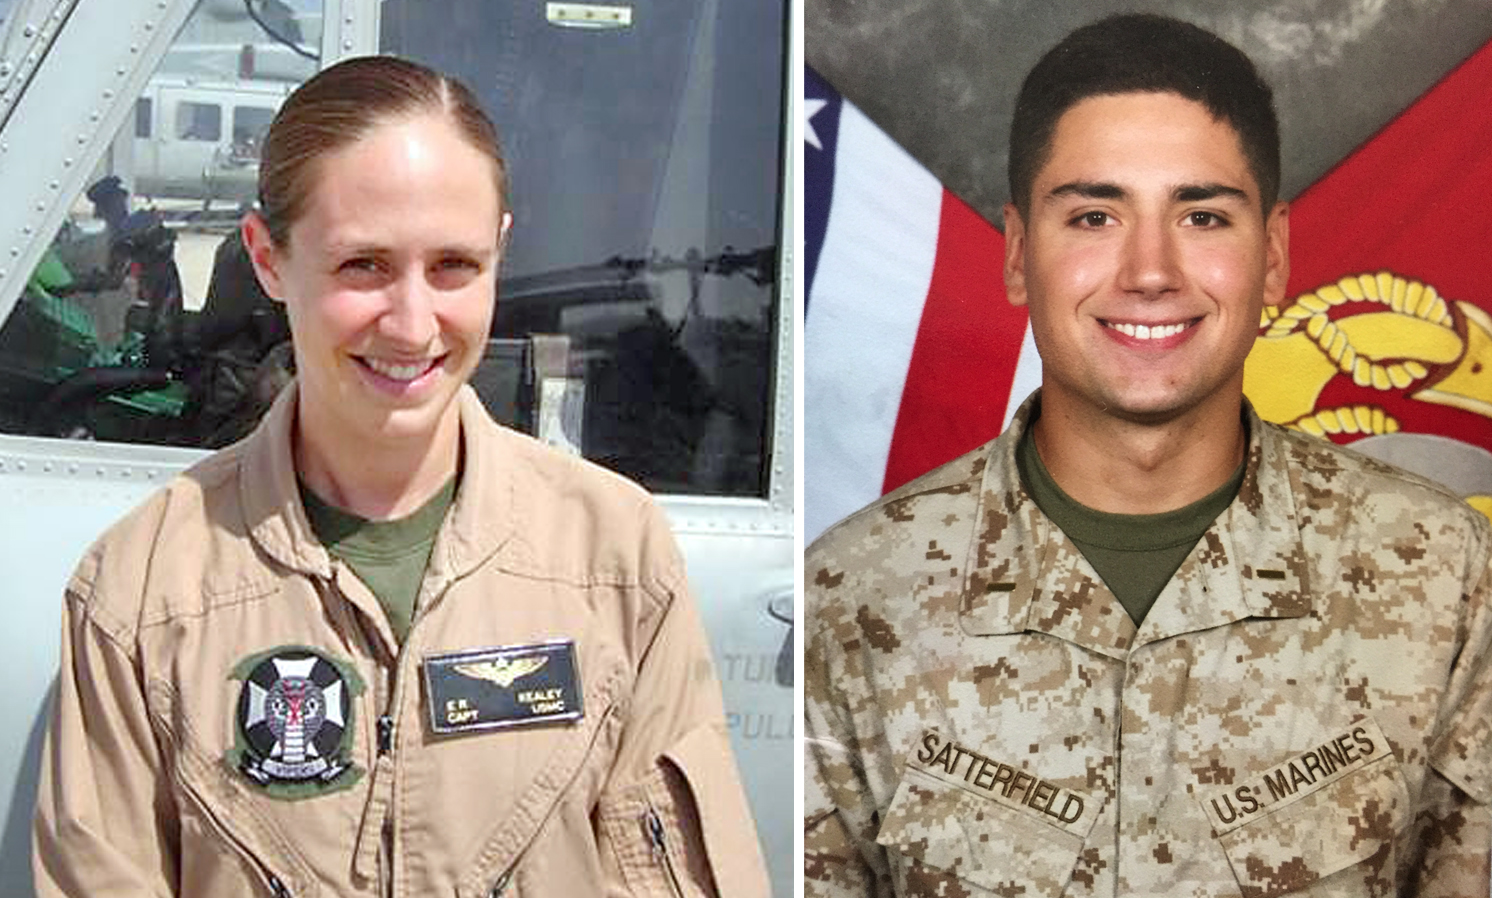 Investigation: Faulty filter cover, pilot error caused fatal Marine helicopter crash